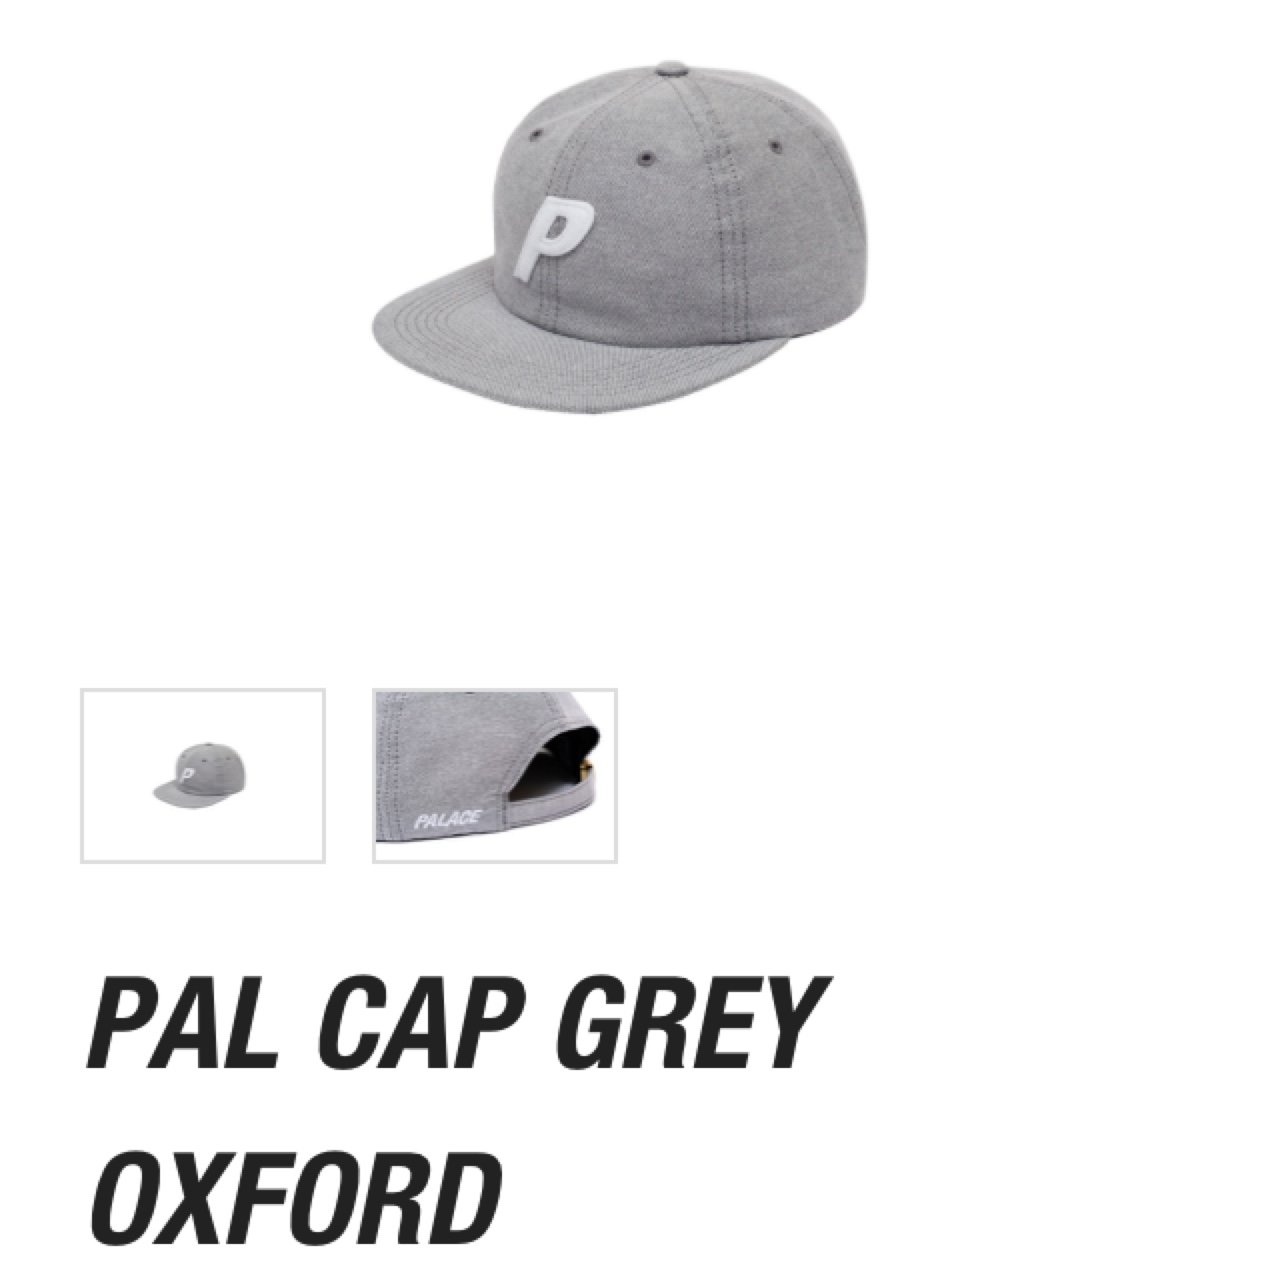 1179e44b48c Palace P 6 Panel Cap - Grey Oxford. Deadstock